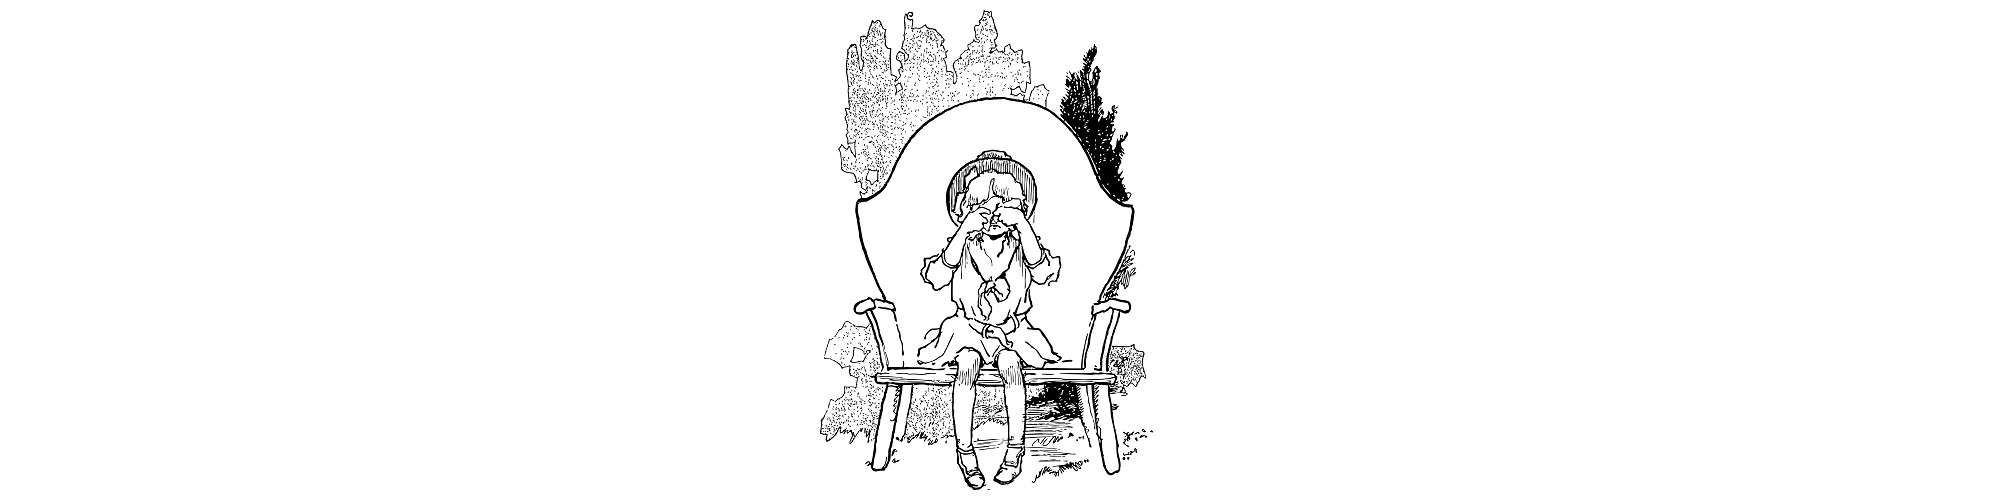 """Girl in chair illustration - """"I'm in a Trough - Whinge Part 2"""" Blog"""